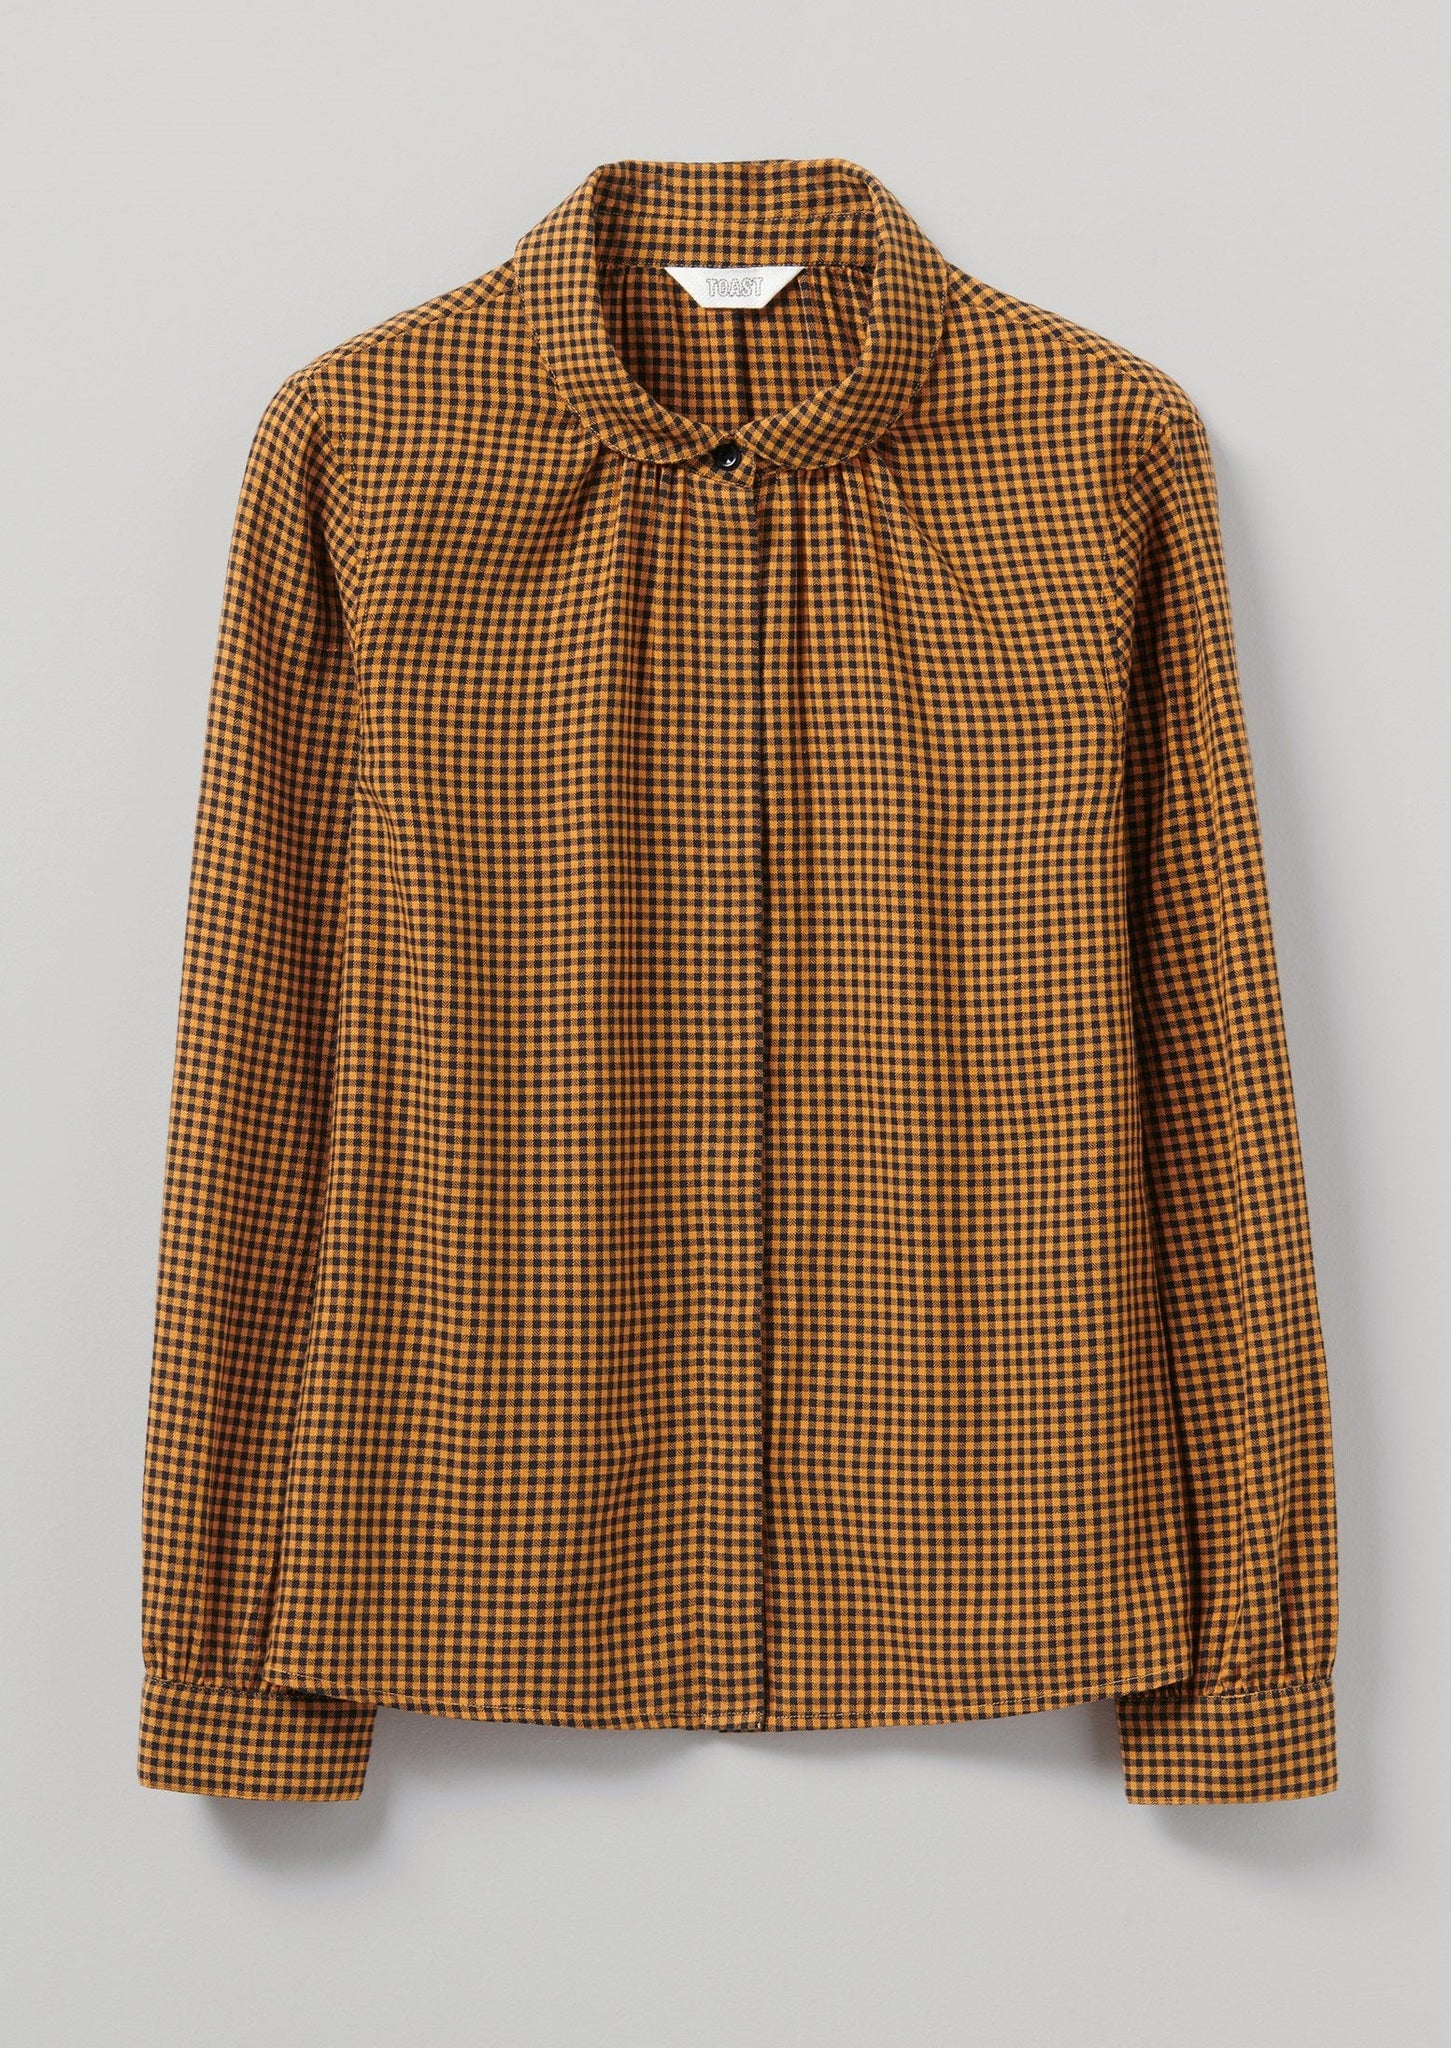 Anja Gingham Check Cotton Shirt | Slate/Washed Apricot ?id=16692155285538